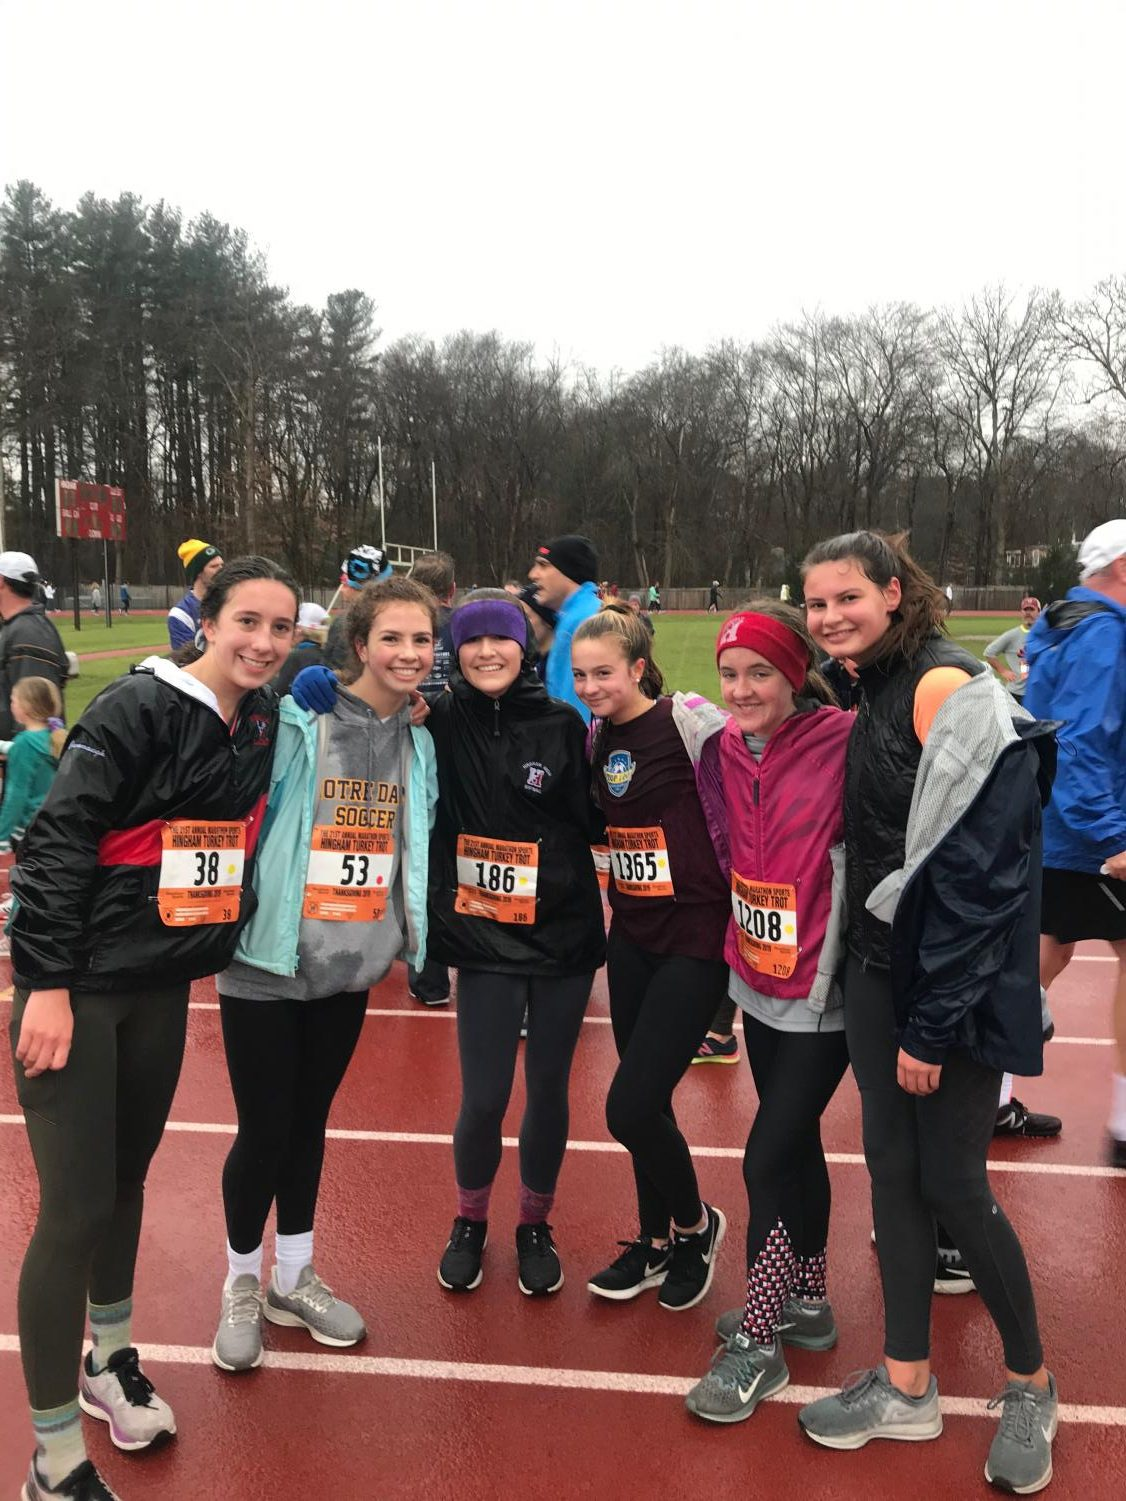 From Left: Sophomores Mila Ranocha, Molly Drew, Elle Cavanaugh, Jade Weggeman, Ava Malloy, and Camille Boer pose for a photo after finishing the trot.